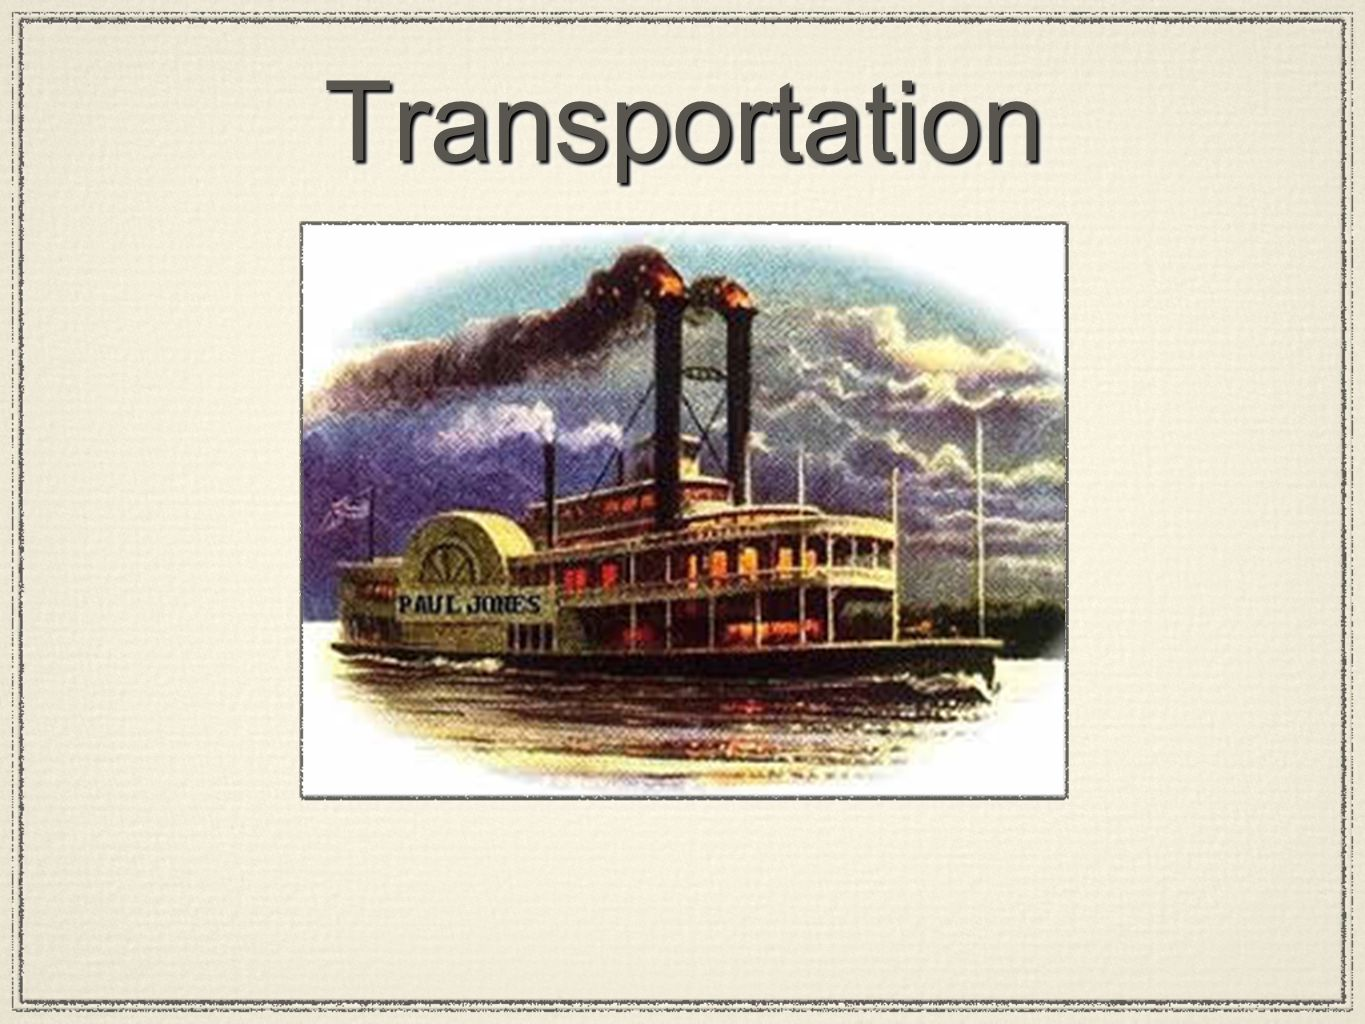 TransportationTransportation